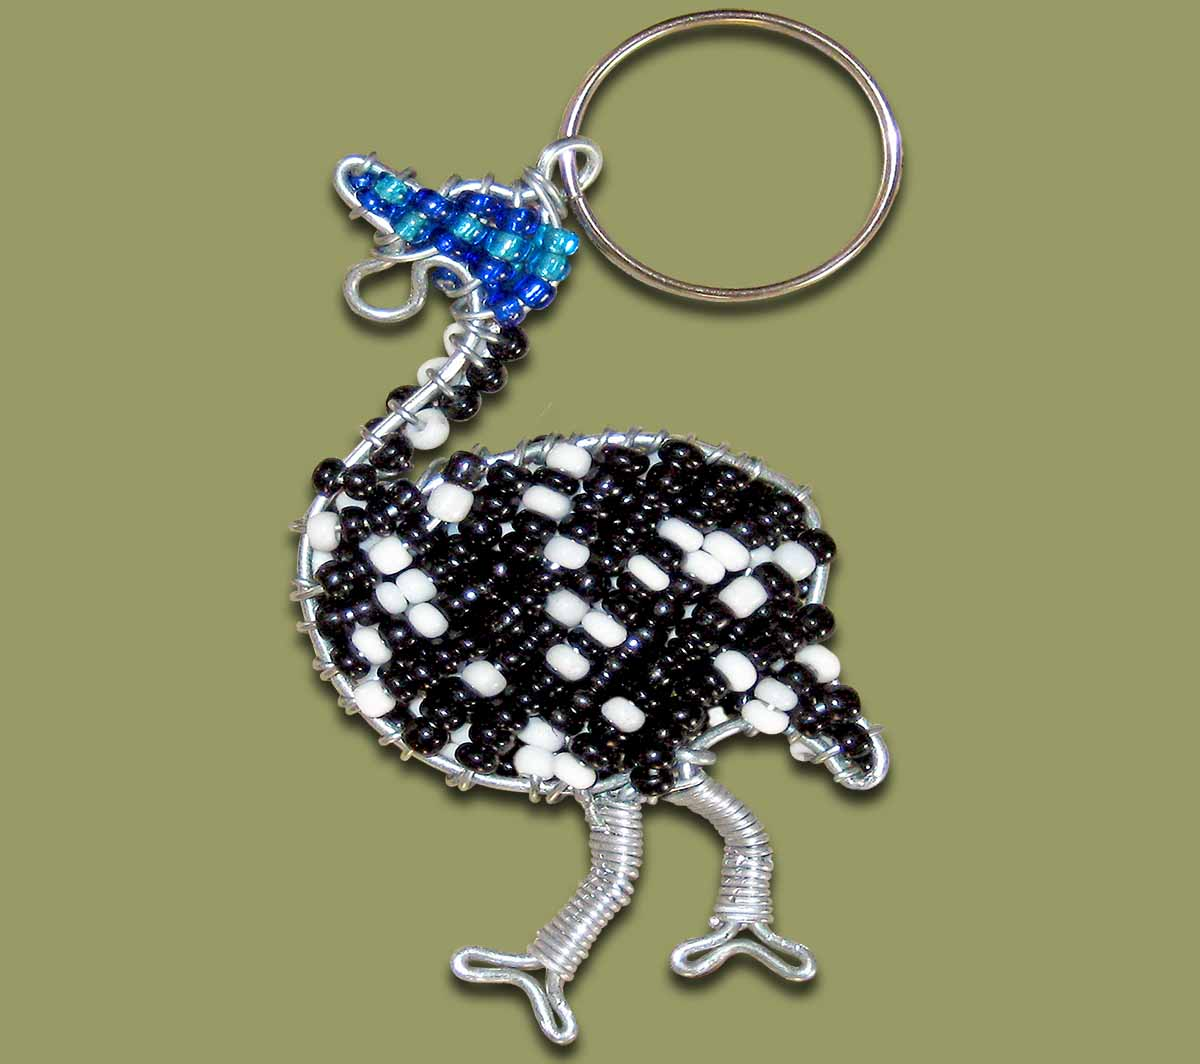 Beaded Key Ring Designs